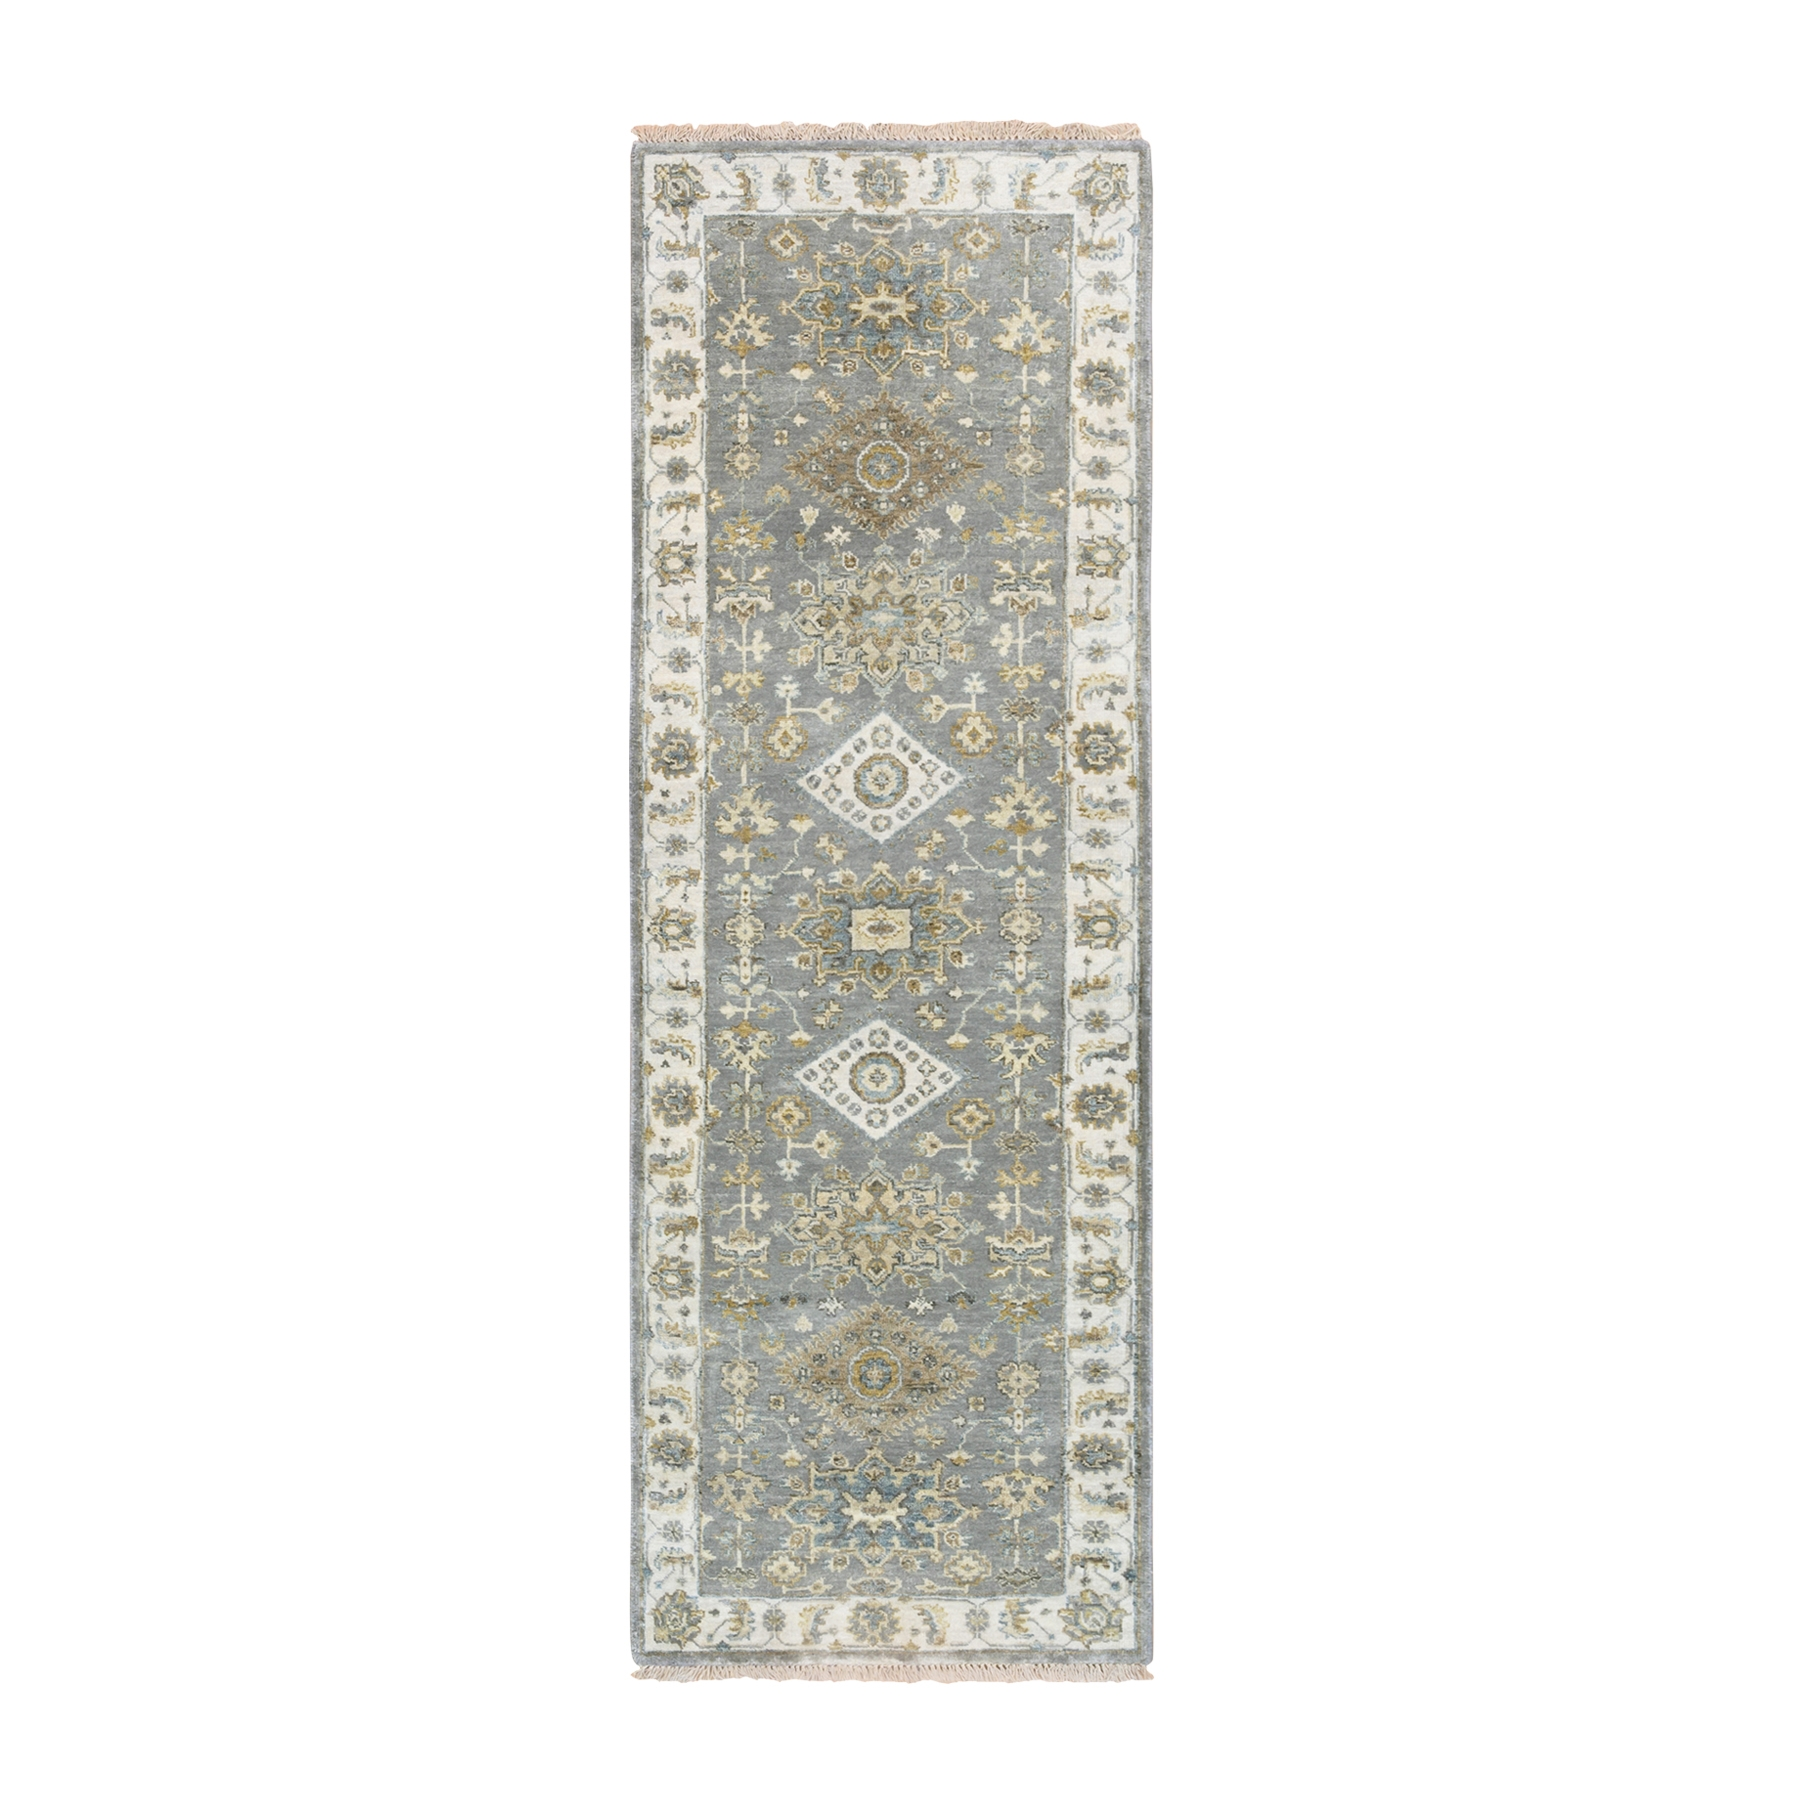 "2'7""x8' Gray Karajeh Design Pure Wool Hand Knotted Runner Rug"